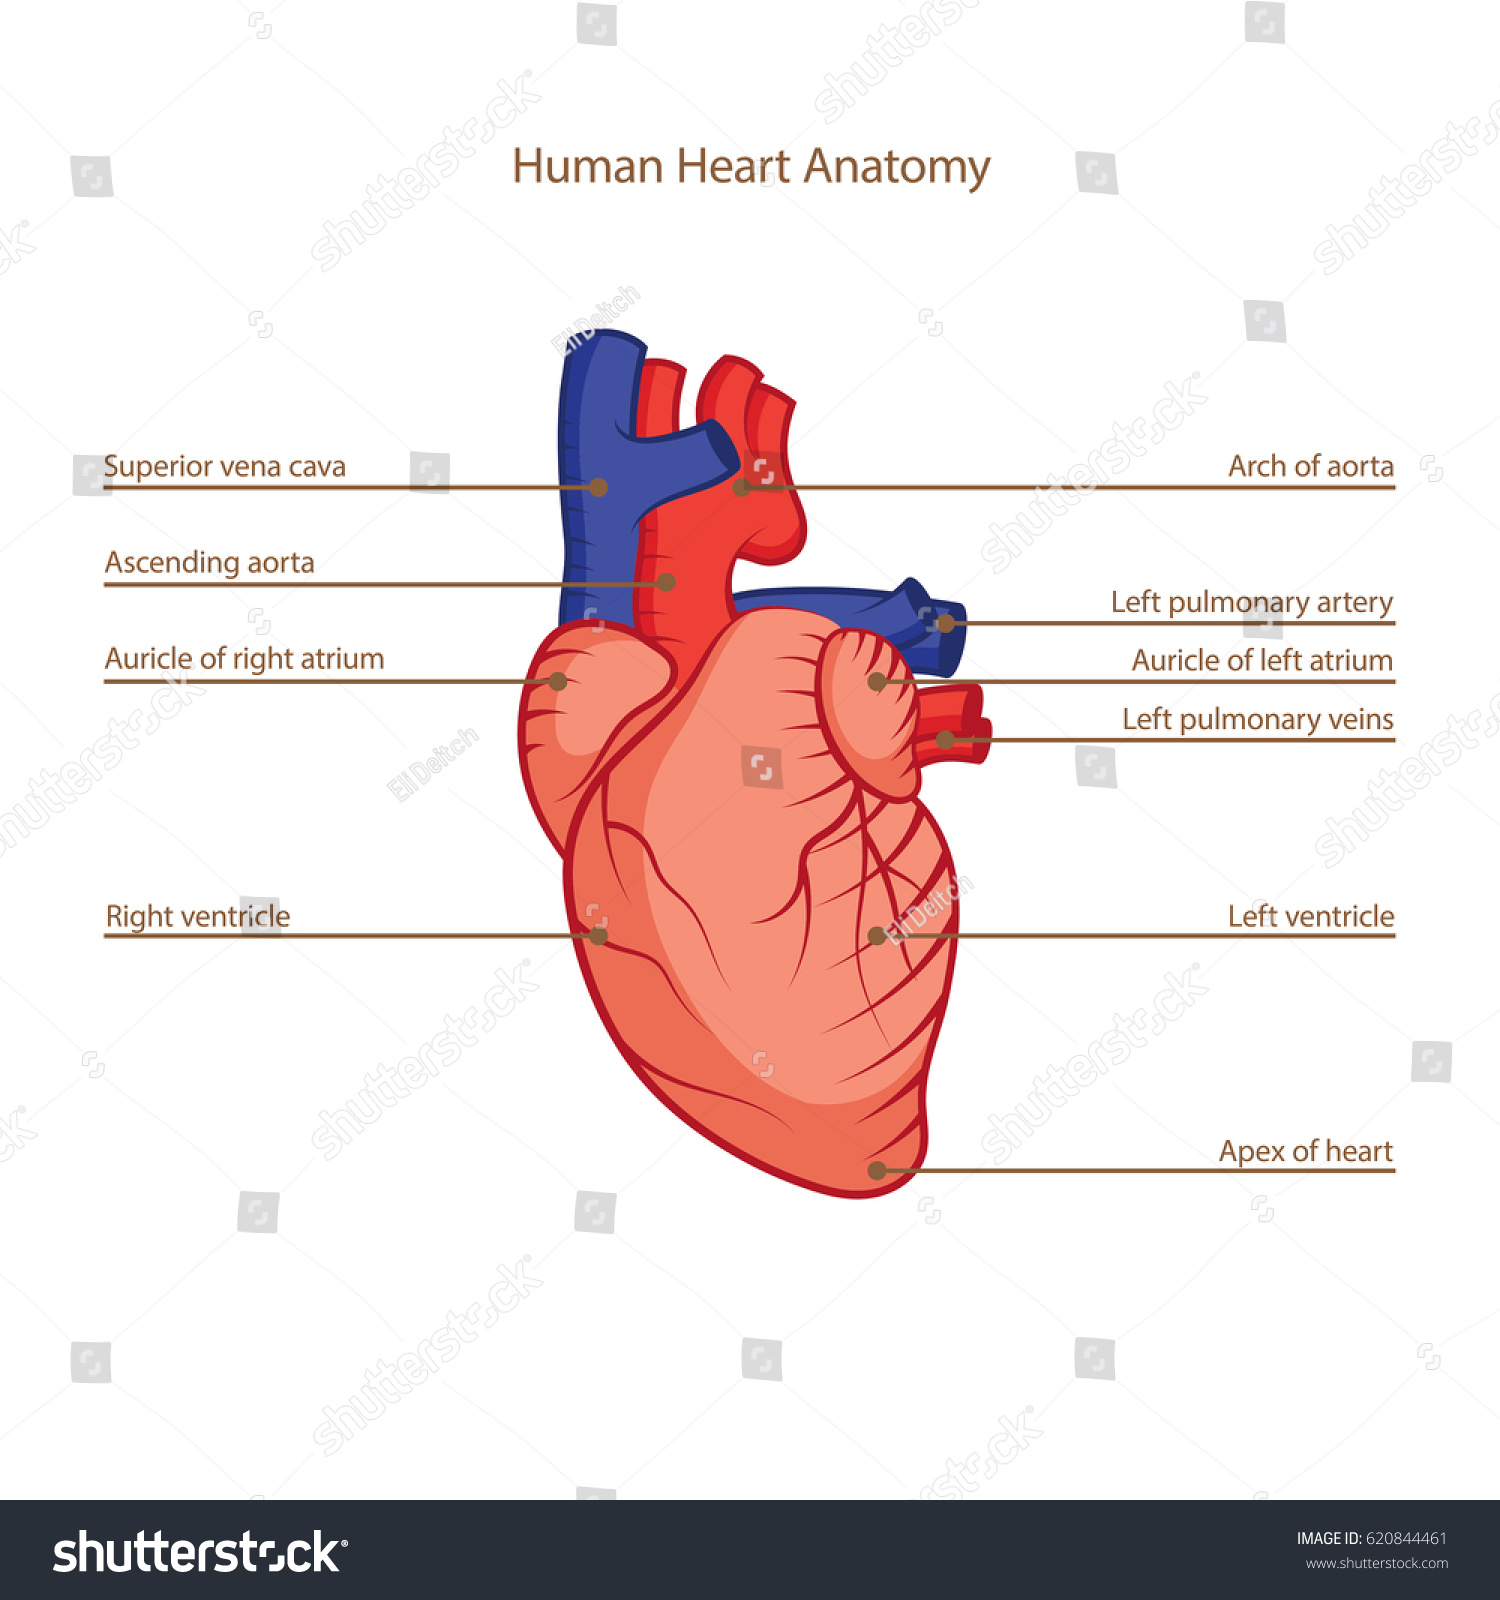 Human Heart Anatomy Illustration Stock Vector Royalty Free